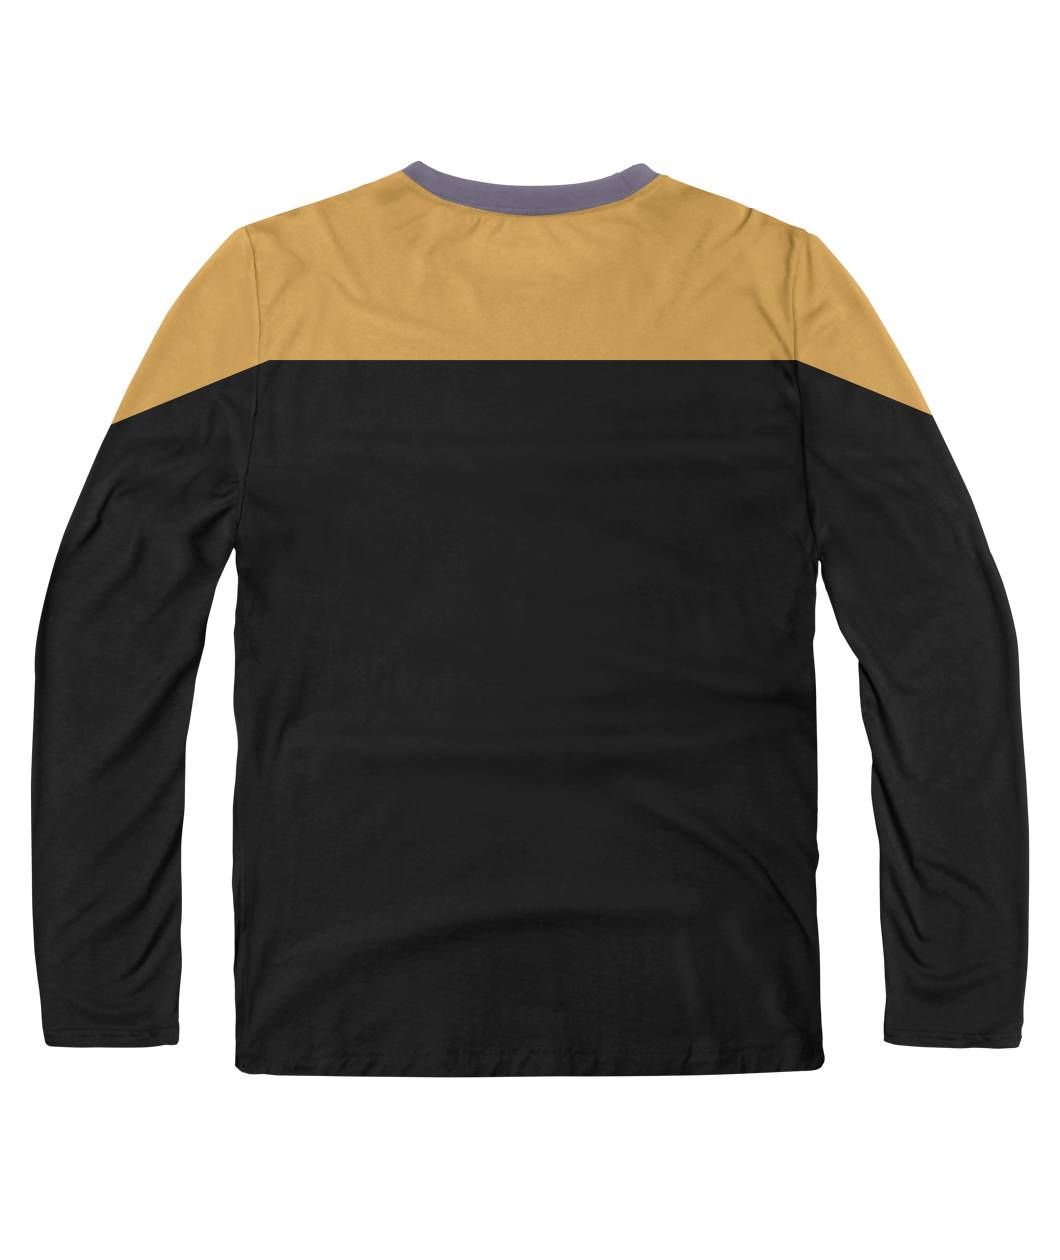 Star Trek Voyager Yellow Color Sublimation Long Sleeve Shirt